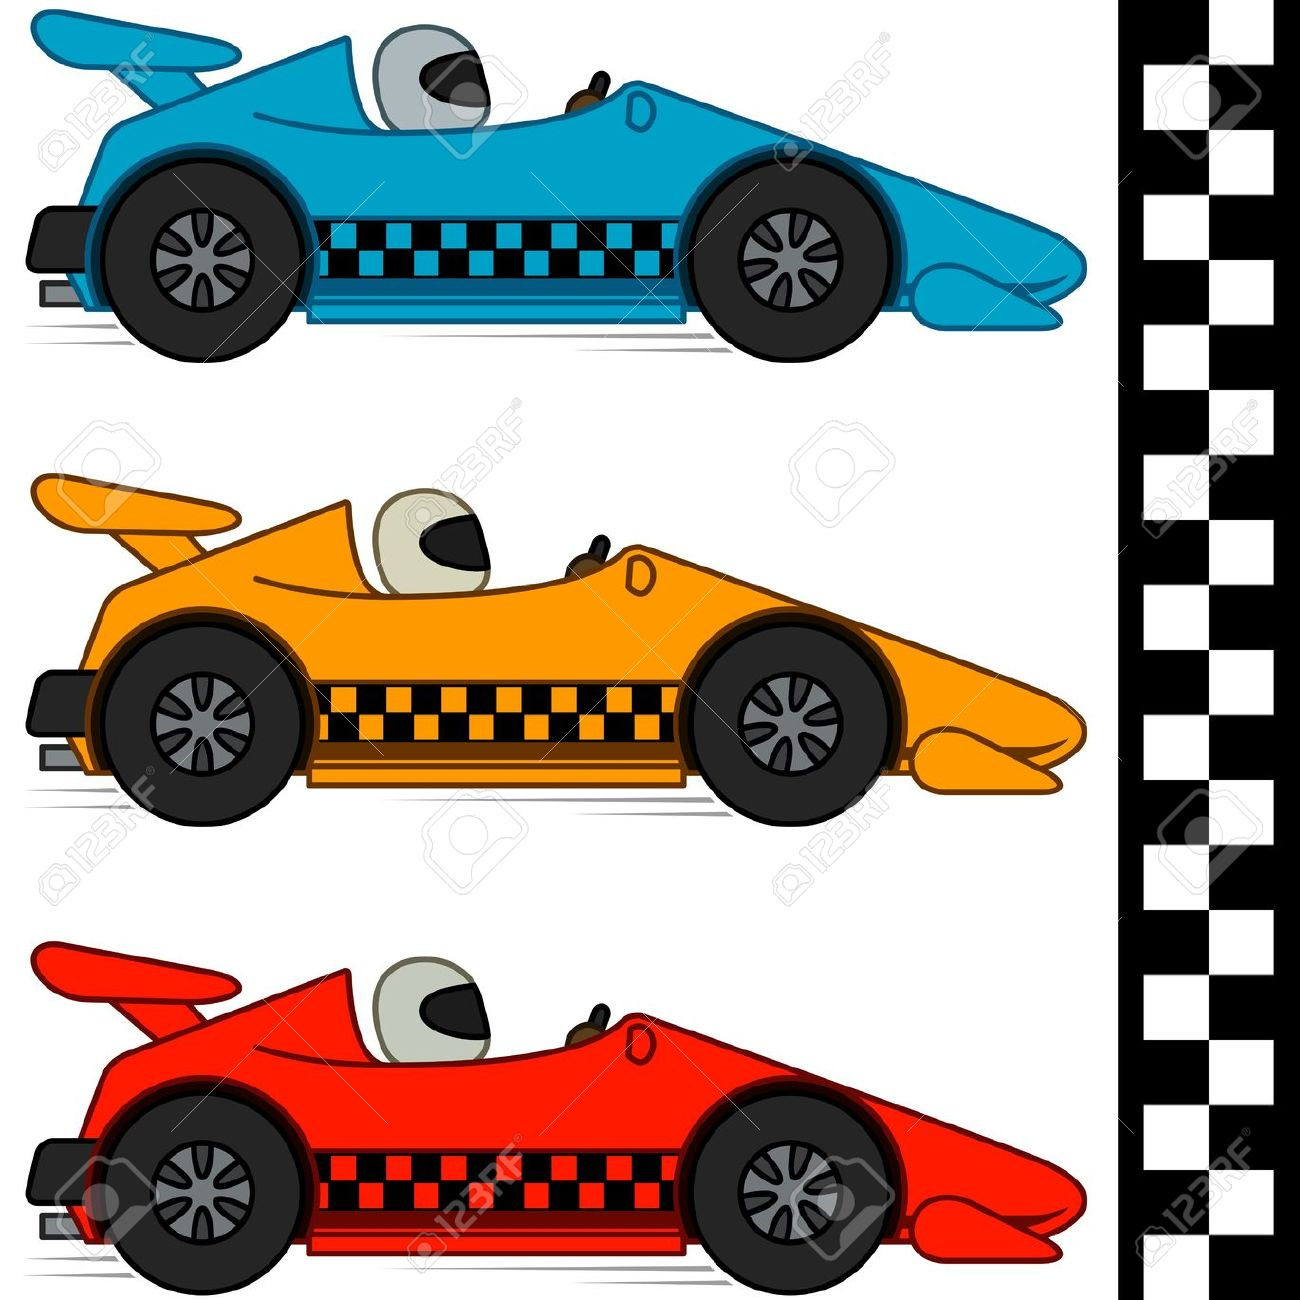 free race car flag clip art - photo #48